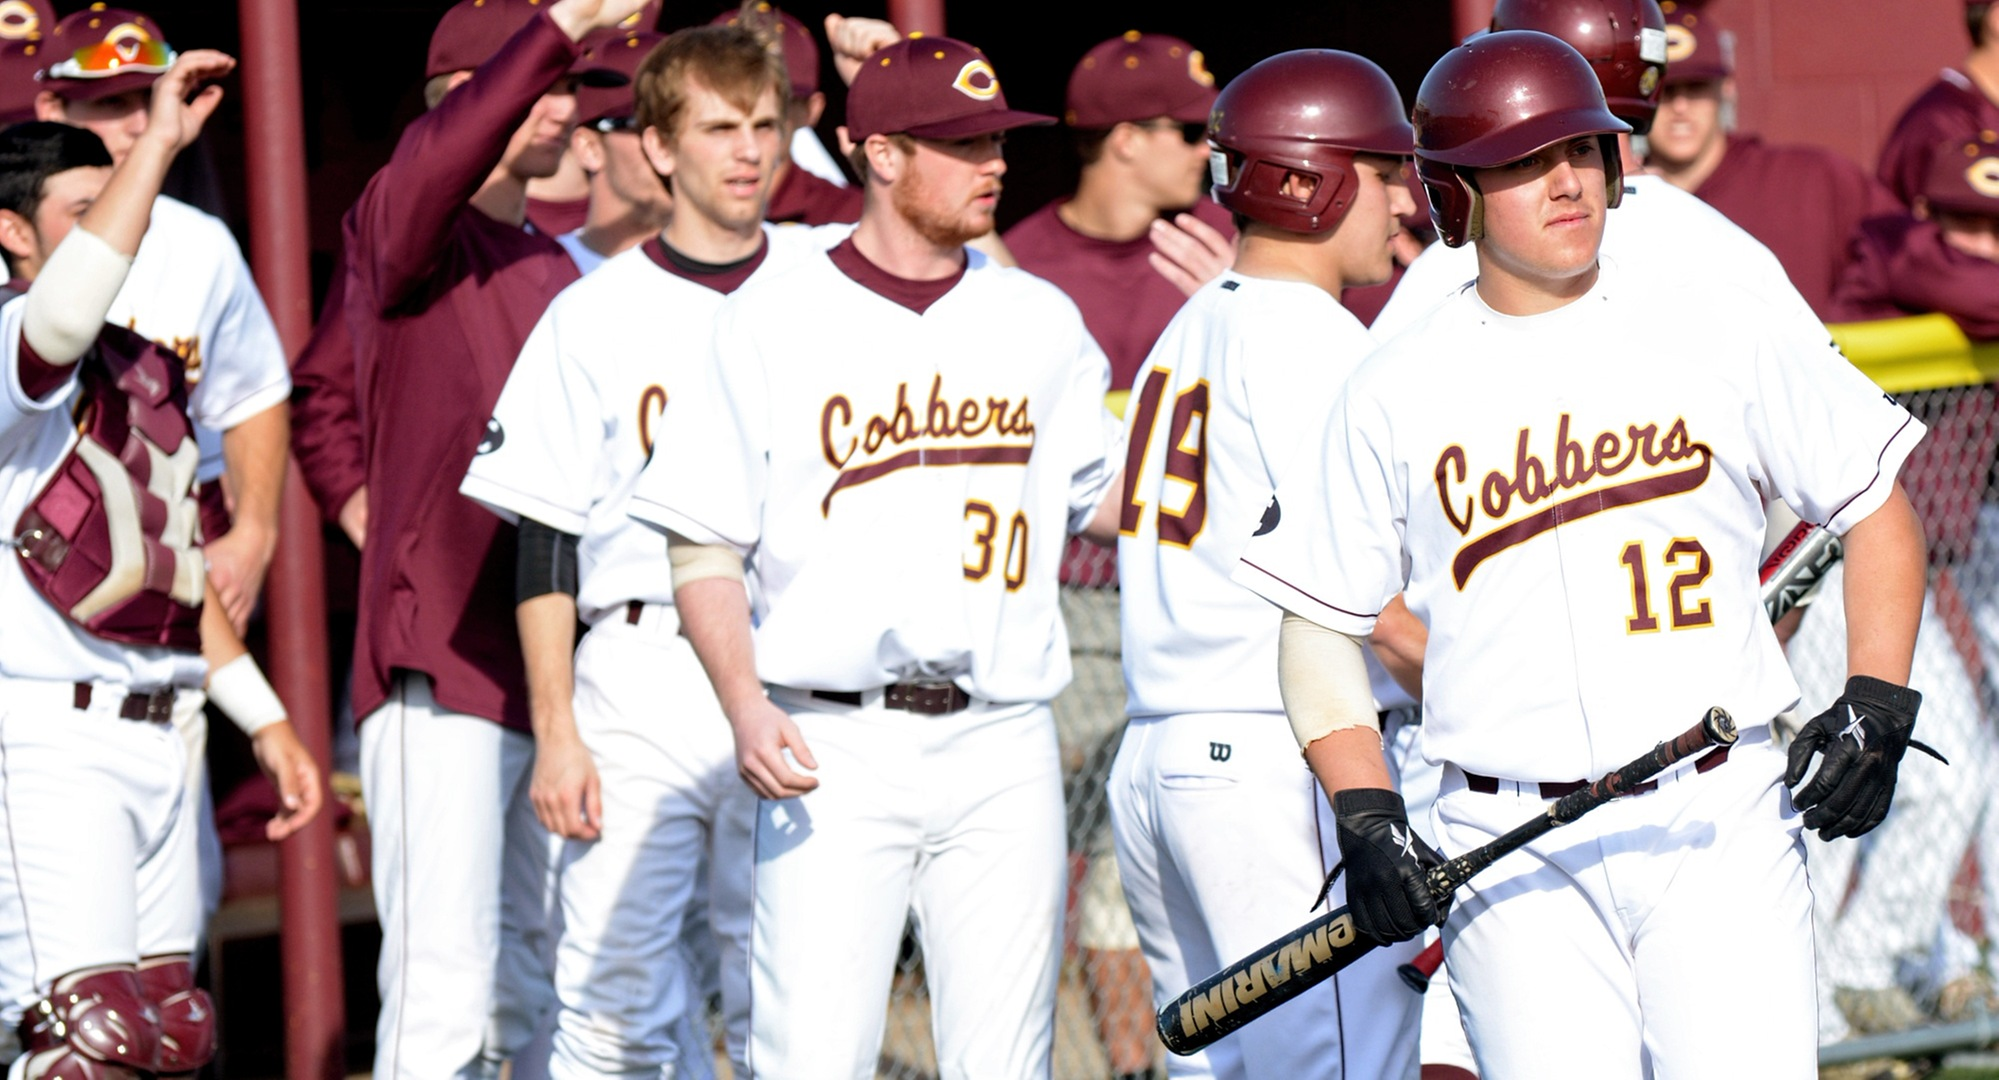 Nate Leintz (#12) had one of the Cobbers' five extra base hits in the team's 8-7 non-conference win at Minn.-Morris.